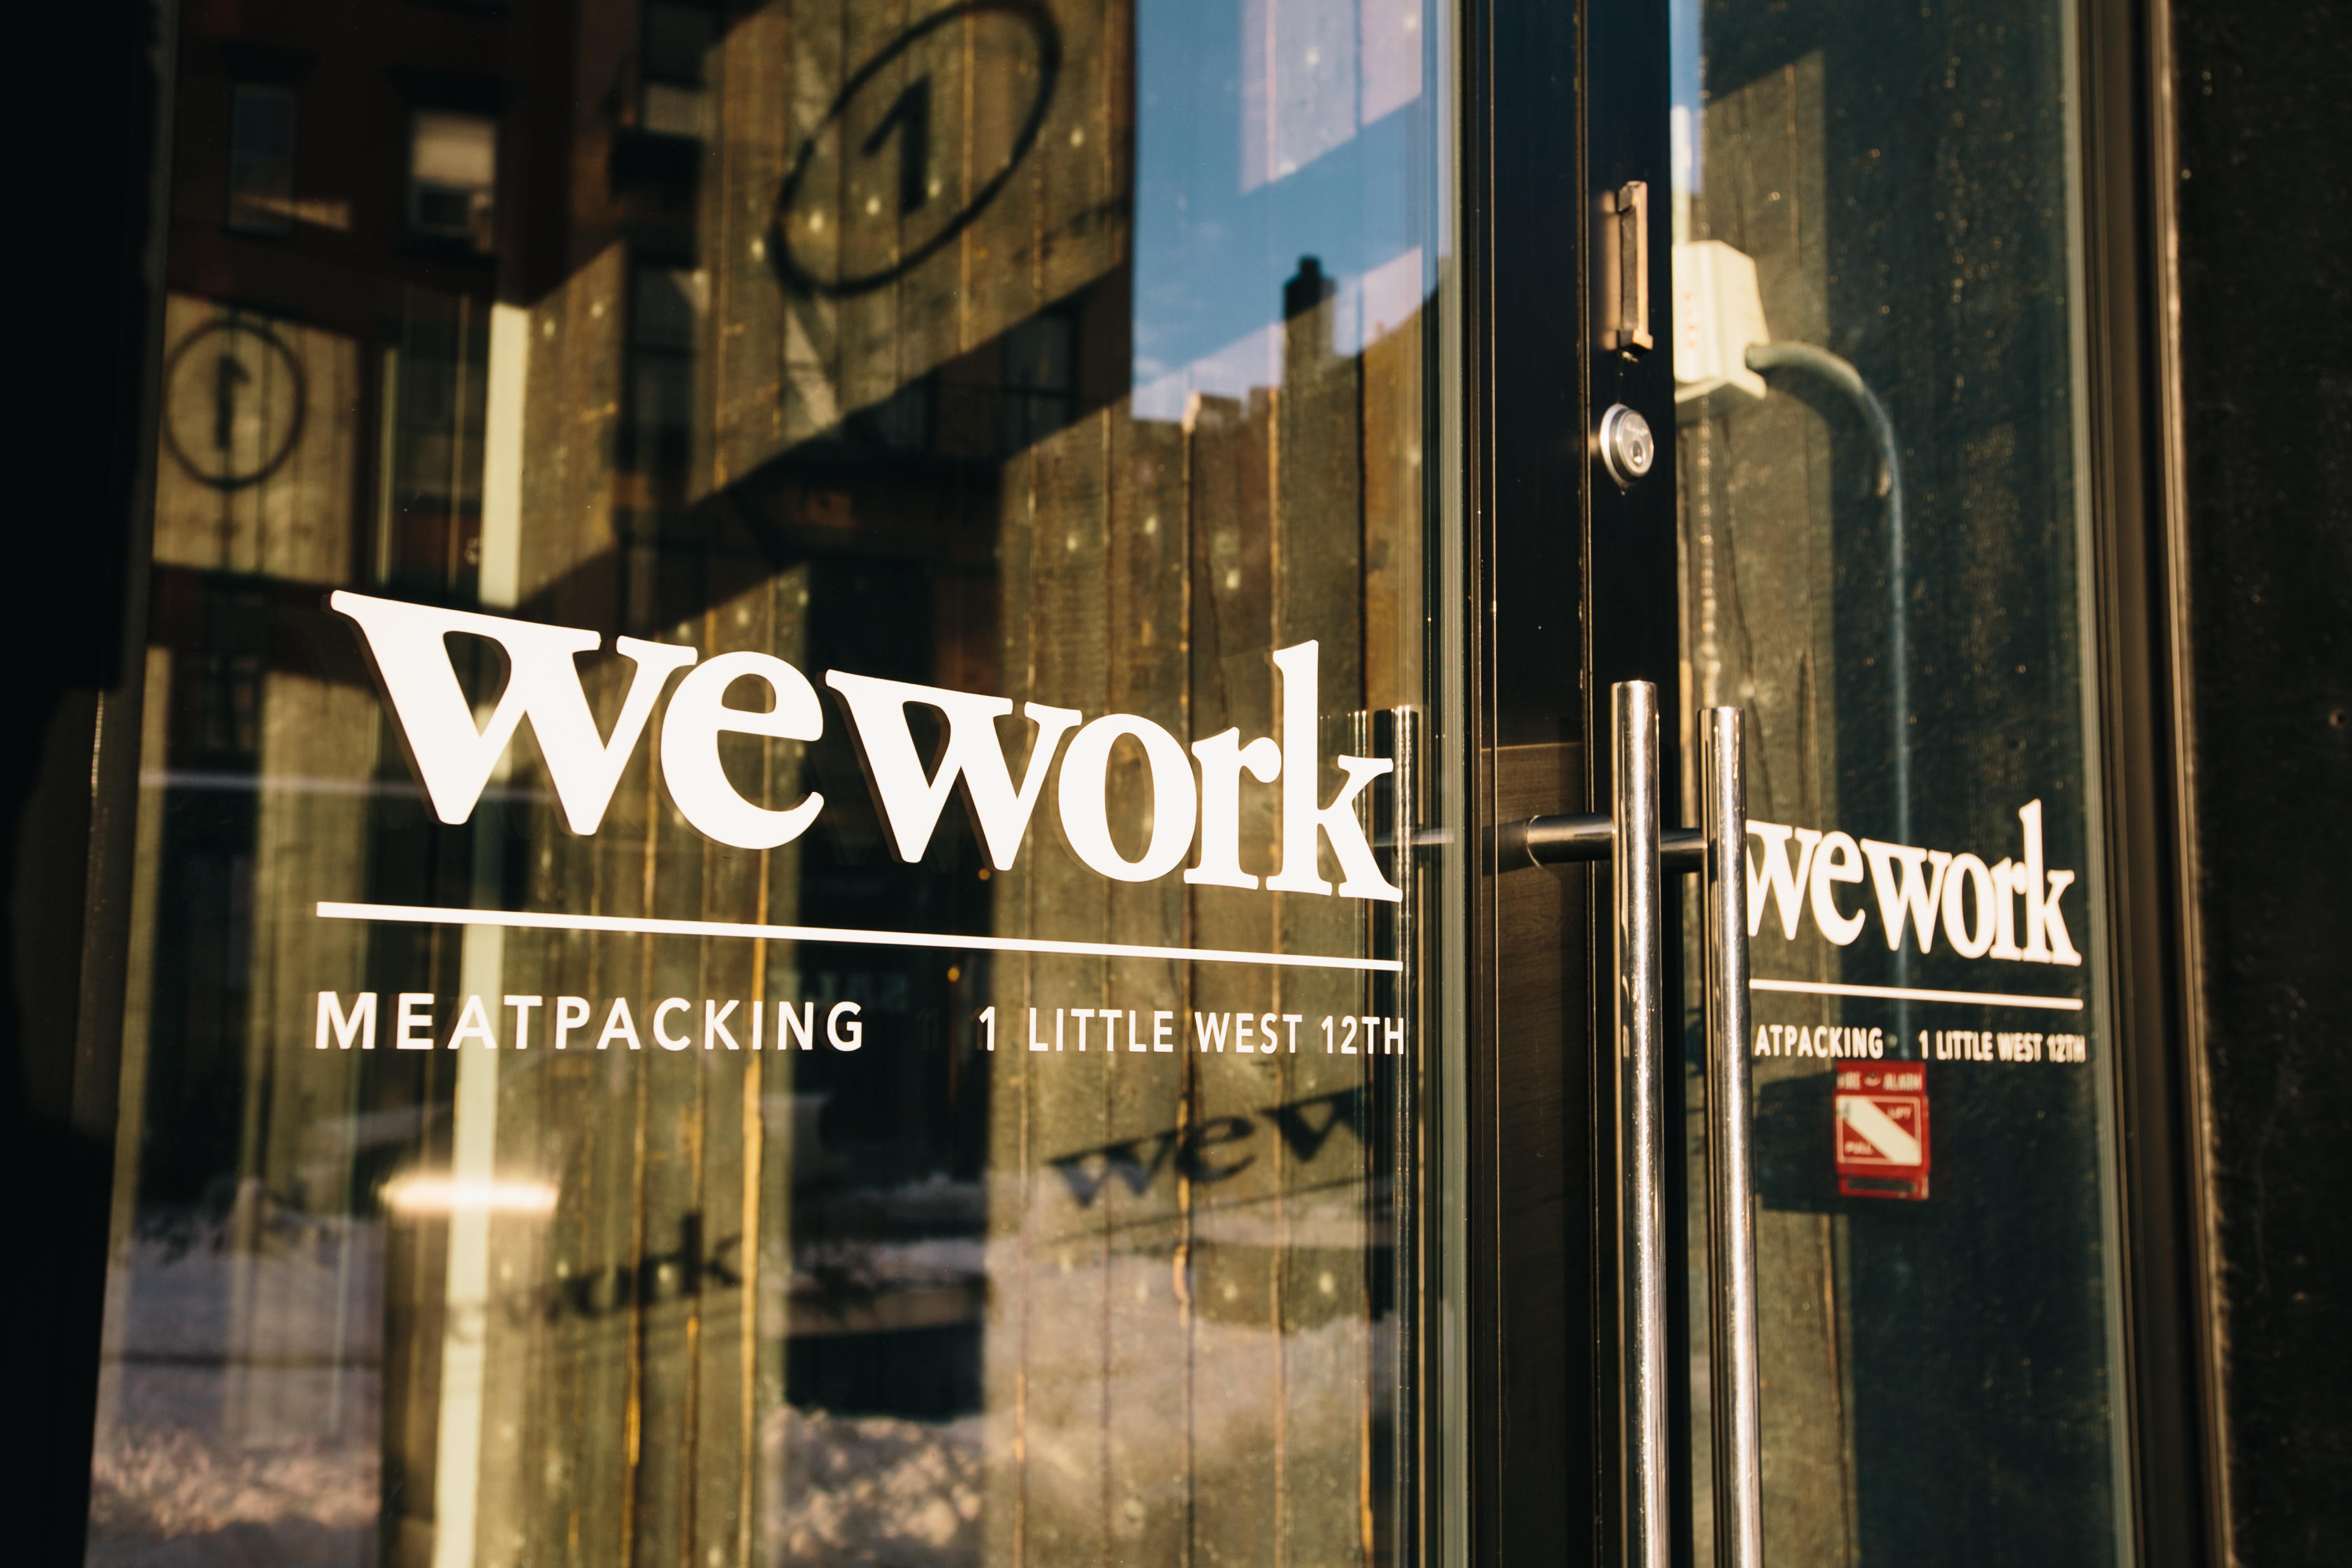 One Little West 12th Street Subway Map.Wework 1 Little West 12th Street New York Ny Office Desk Space